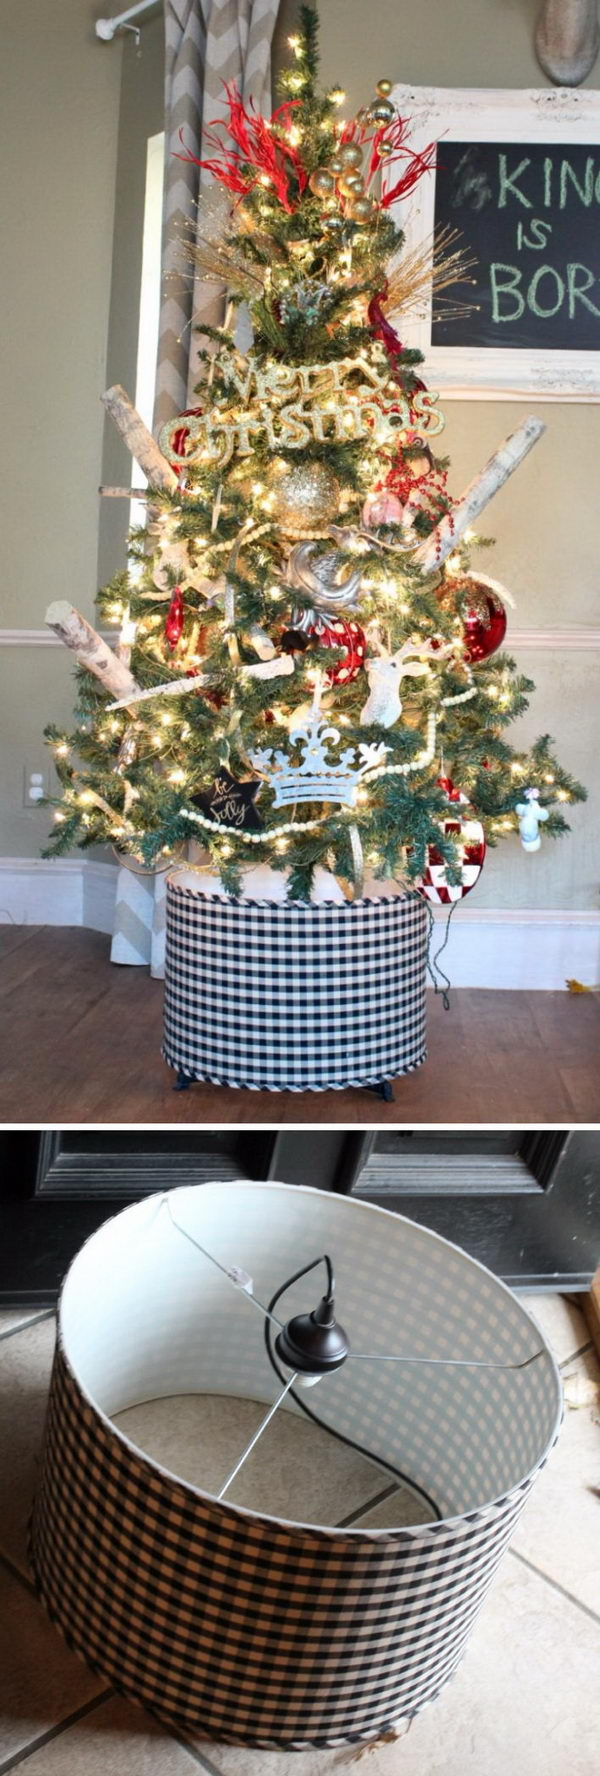 black and white gingham drum light fixture christmas tree stand - Cheap Christmas Tree Stands